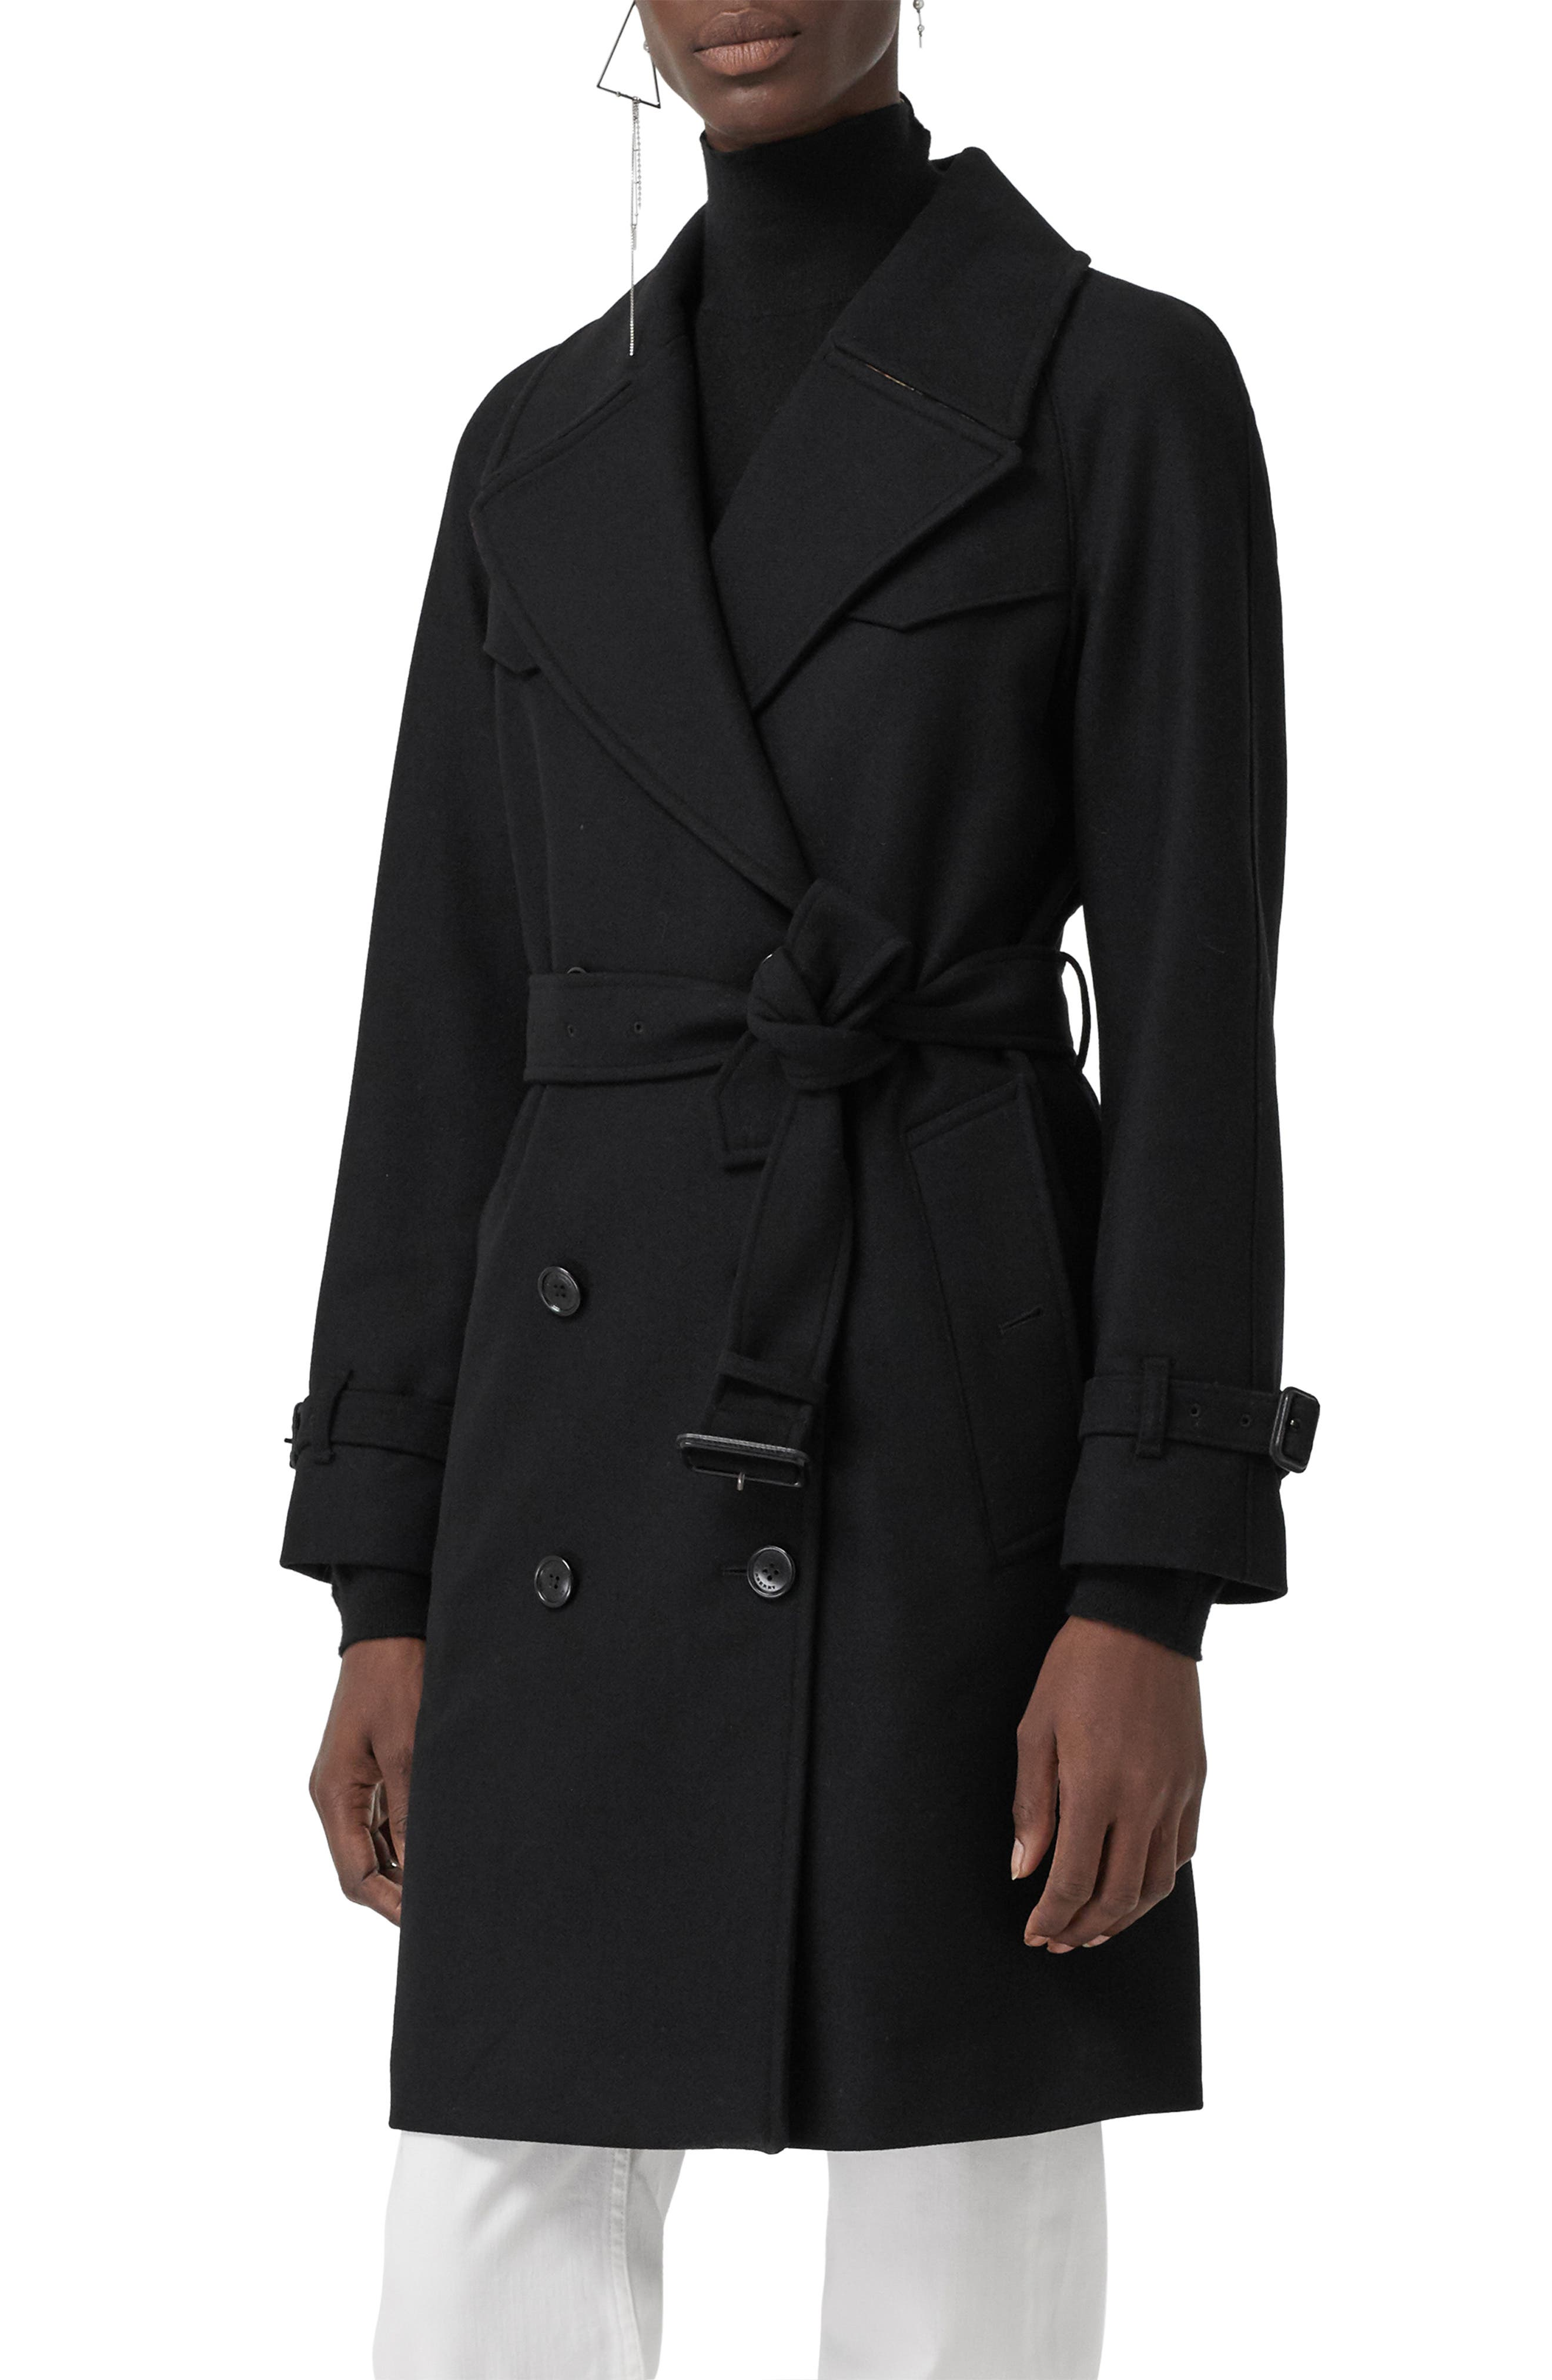 BURBERRY Cranston Wool Blend Trench Coat, Main, color, 001